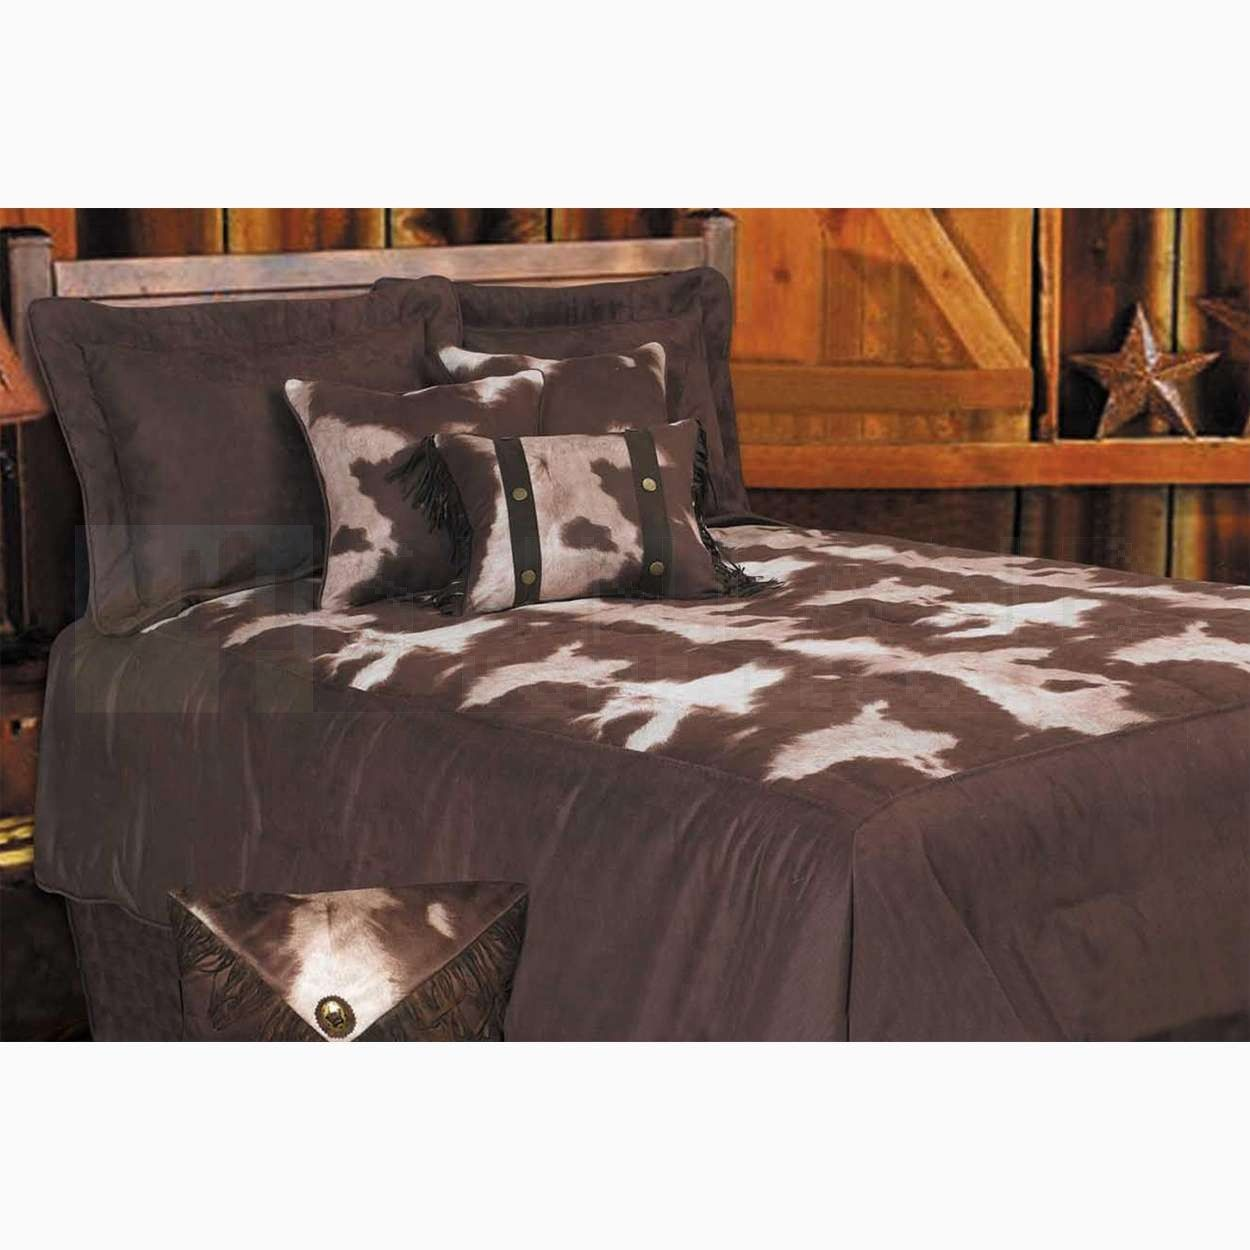 Sunland Home Decor Sunland Home Decor Hm Ws3067 Super King 7 Pc Faux Cowhide